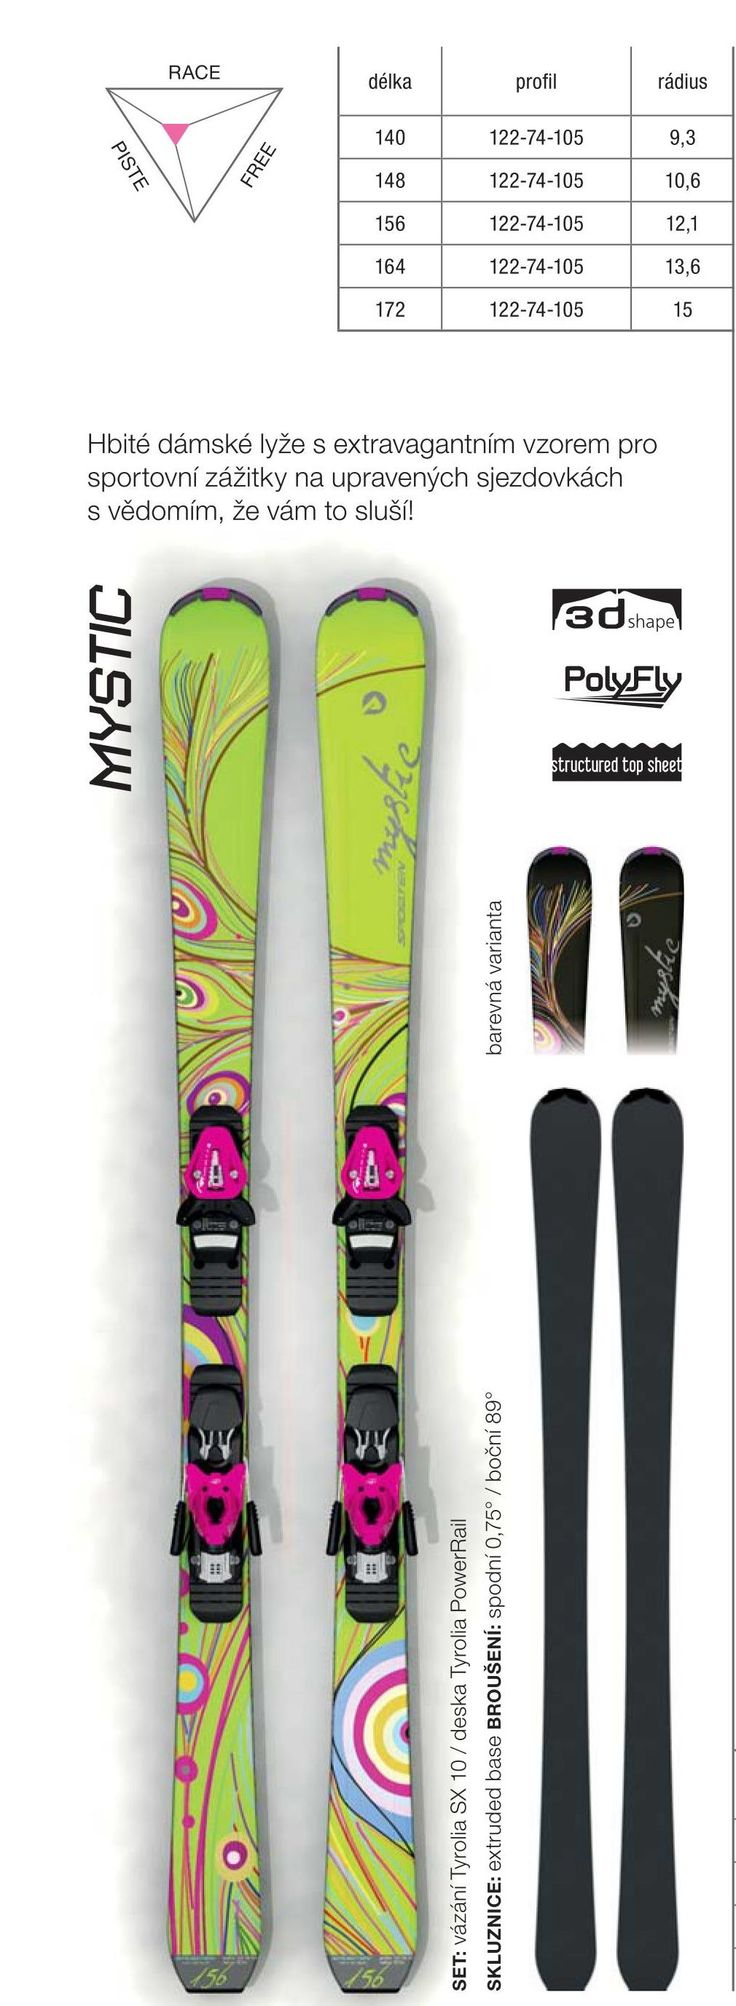 Women design - Sporten Mystic skis 2015/16 collection